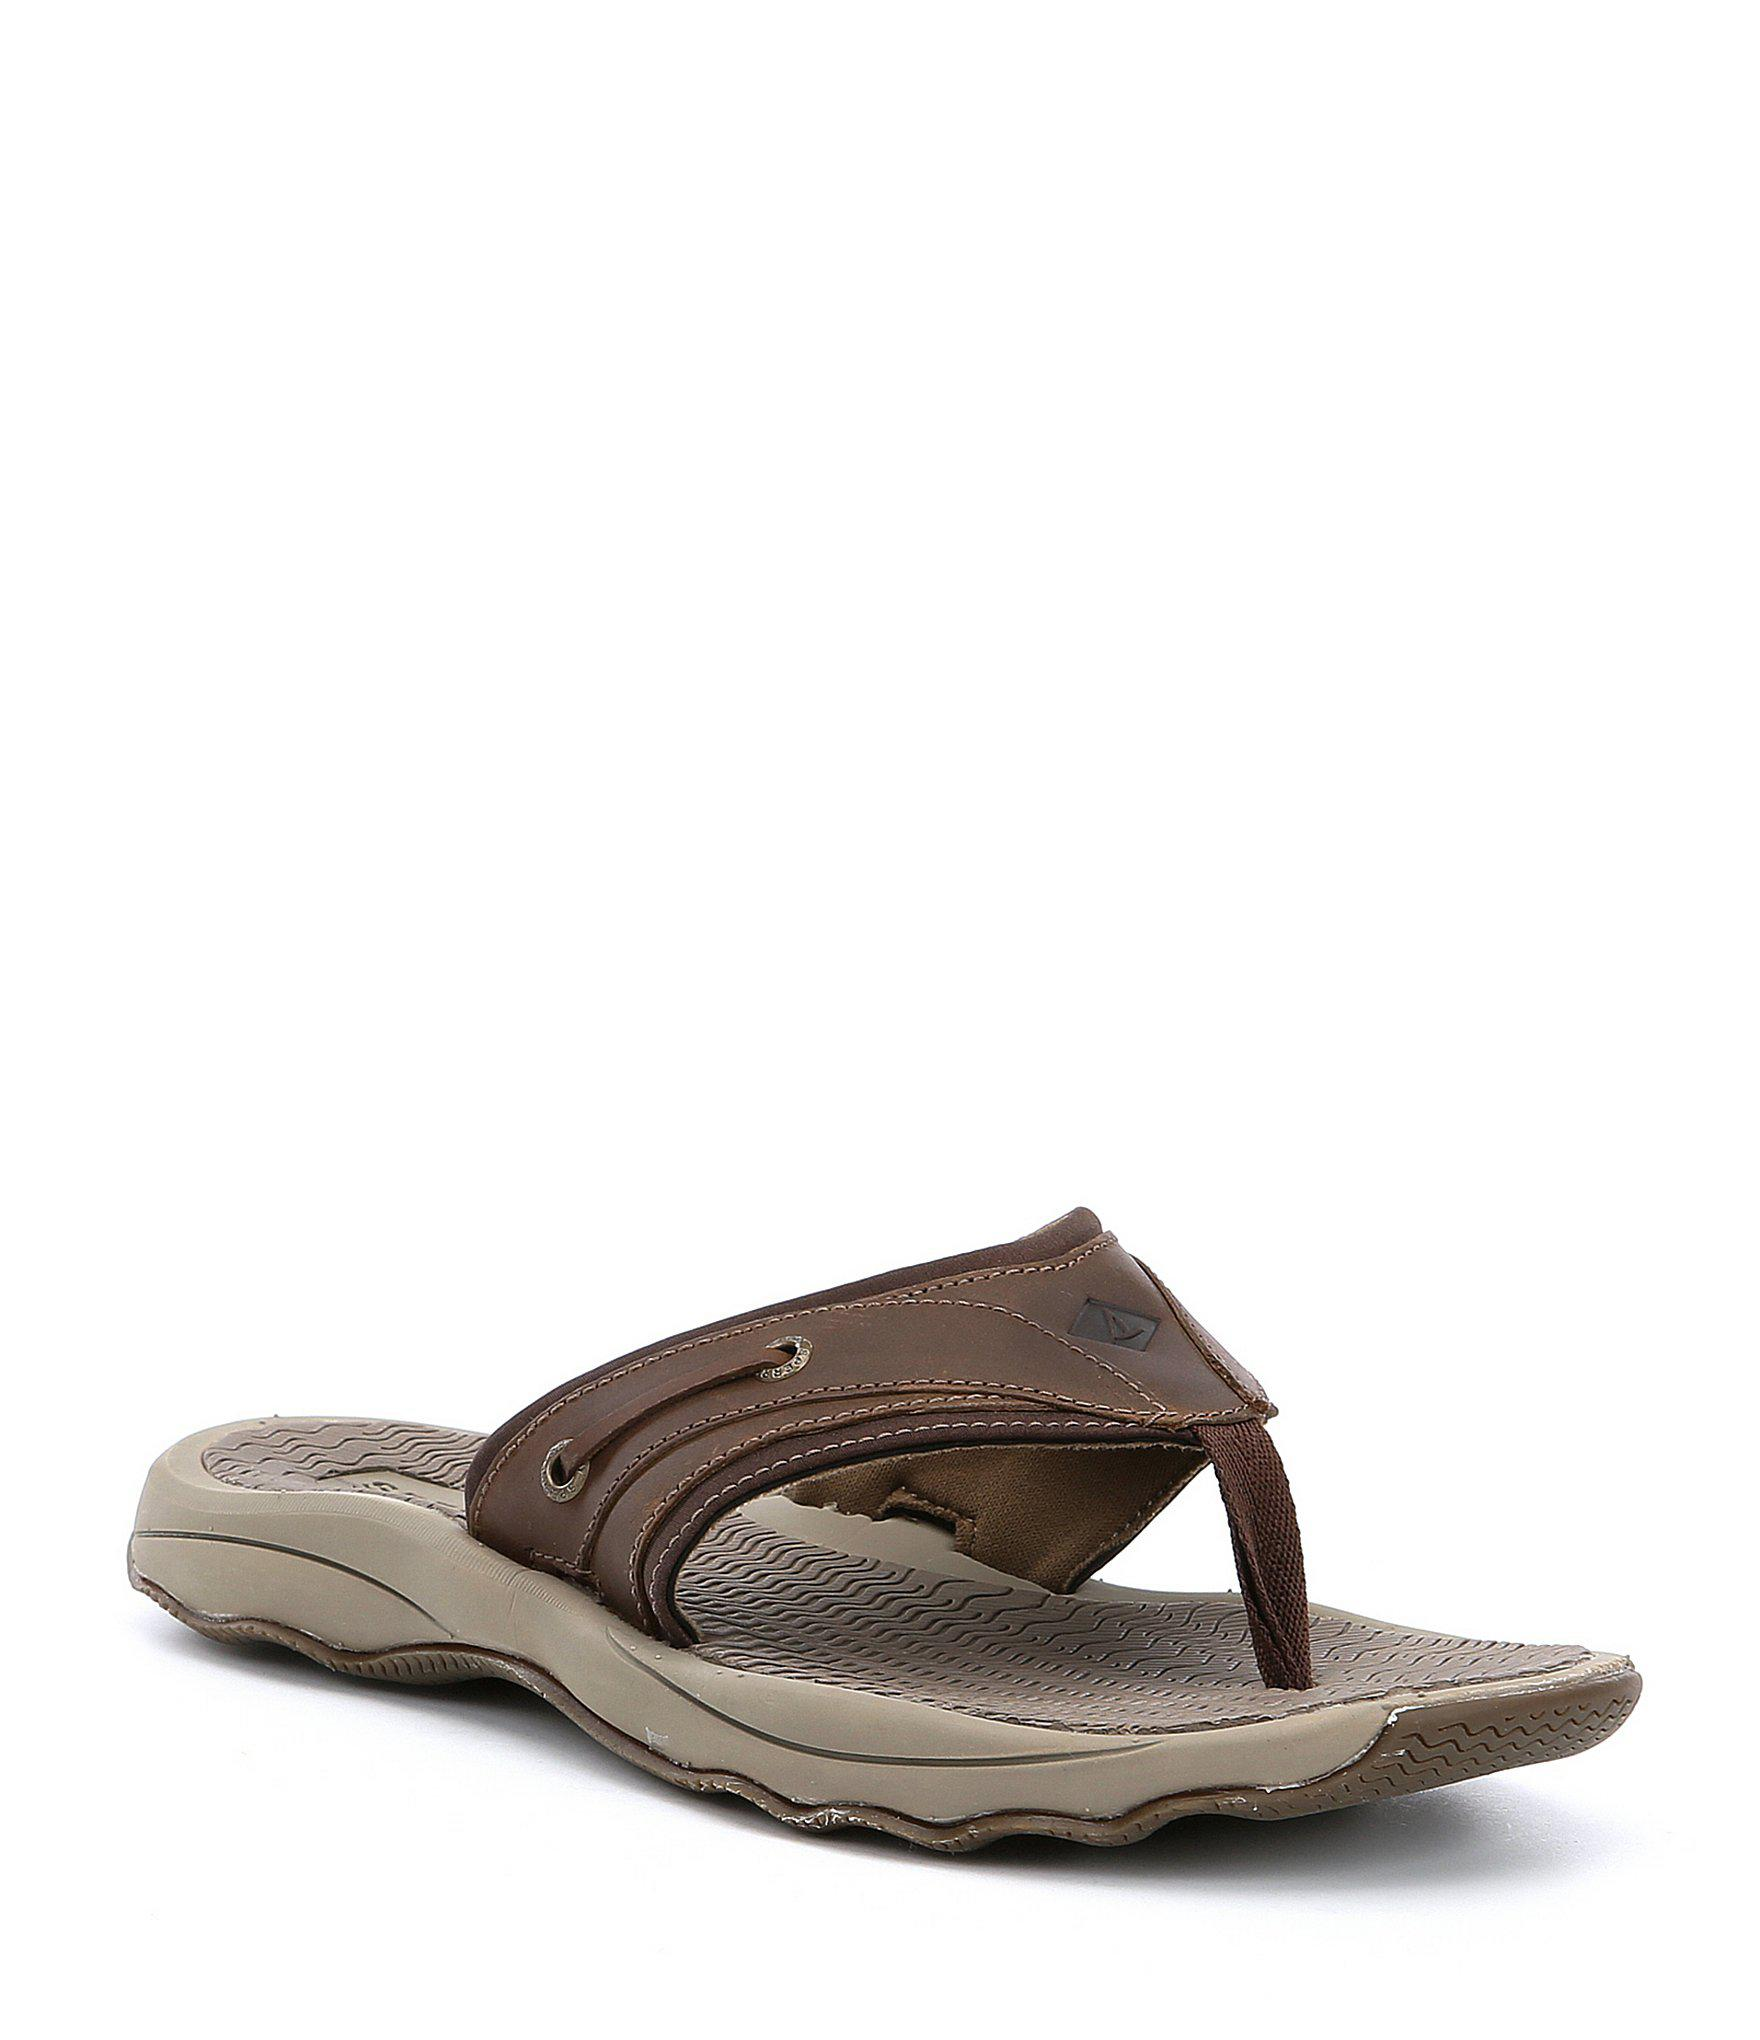 cbe3ee918a7 Lyst - Sperry Top-Sider Outer Banks Flip-flops in Brown for Men